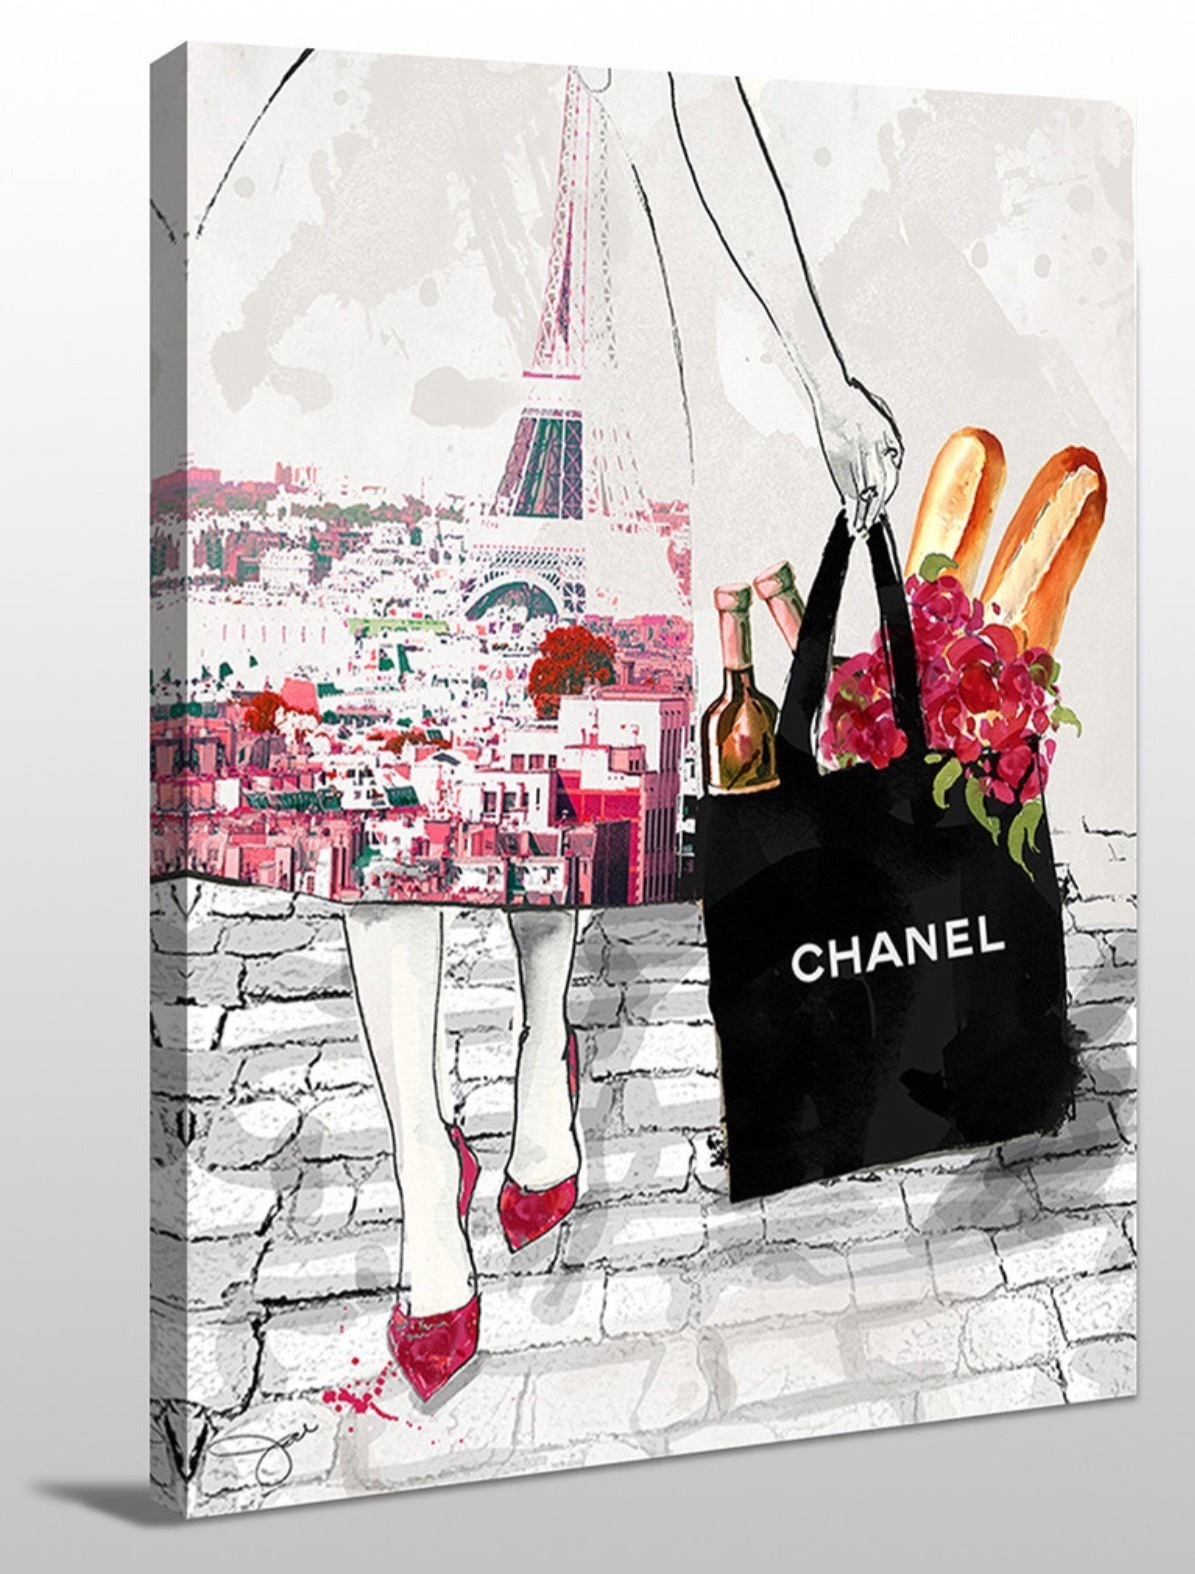 ★Chanelモチーフ★Dinner for Two★キャンバスアート 3サイズ